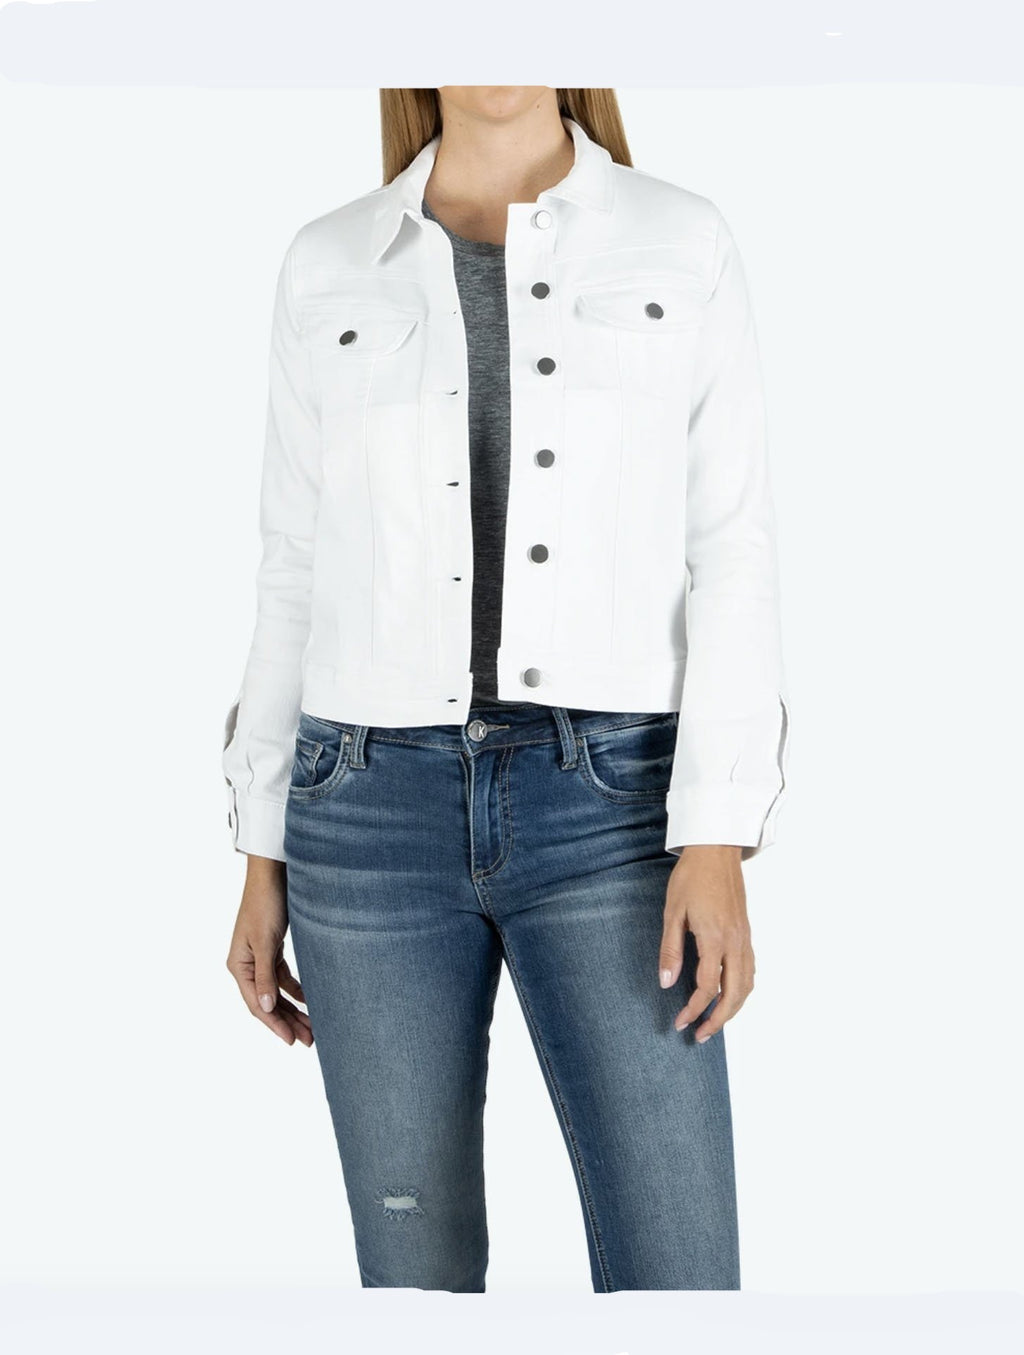 Kut Rene Jacket in White